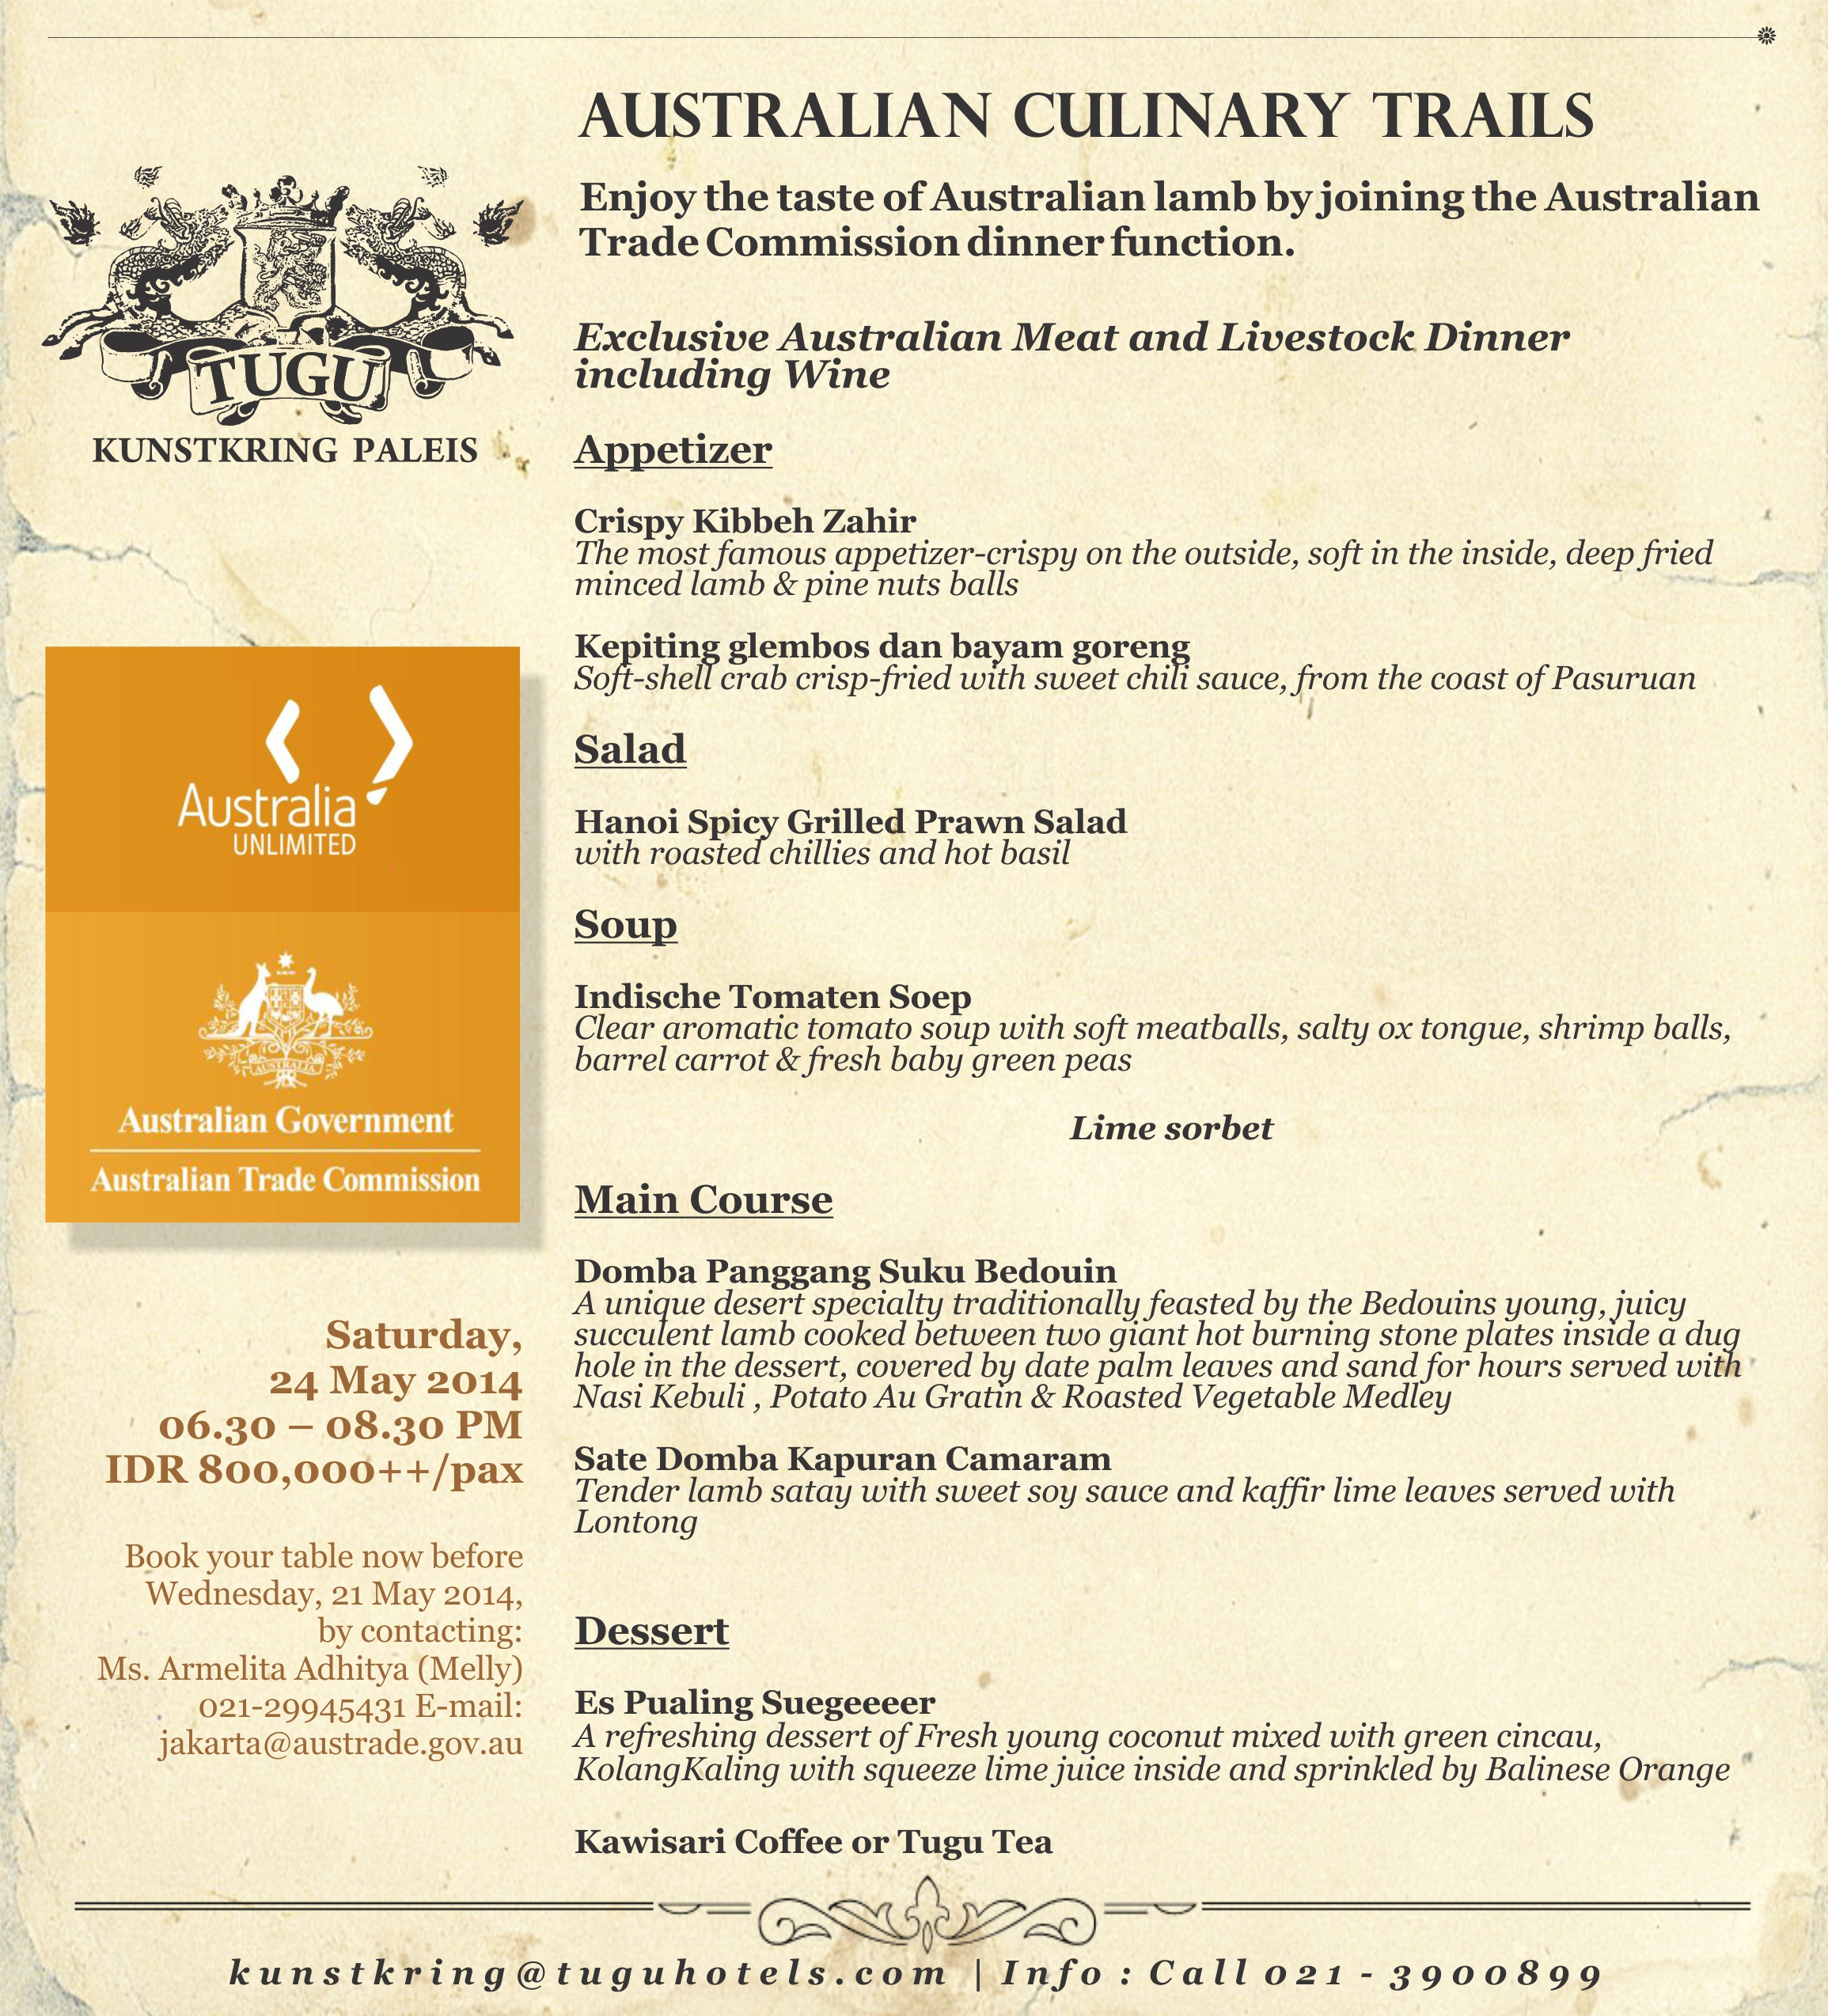 australian culinary trails at tugu kunstkring paleis